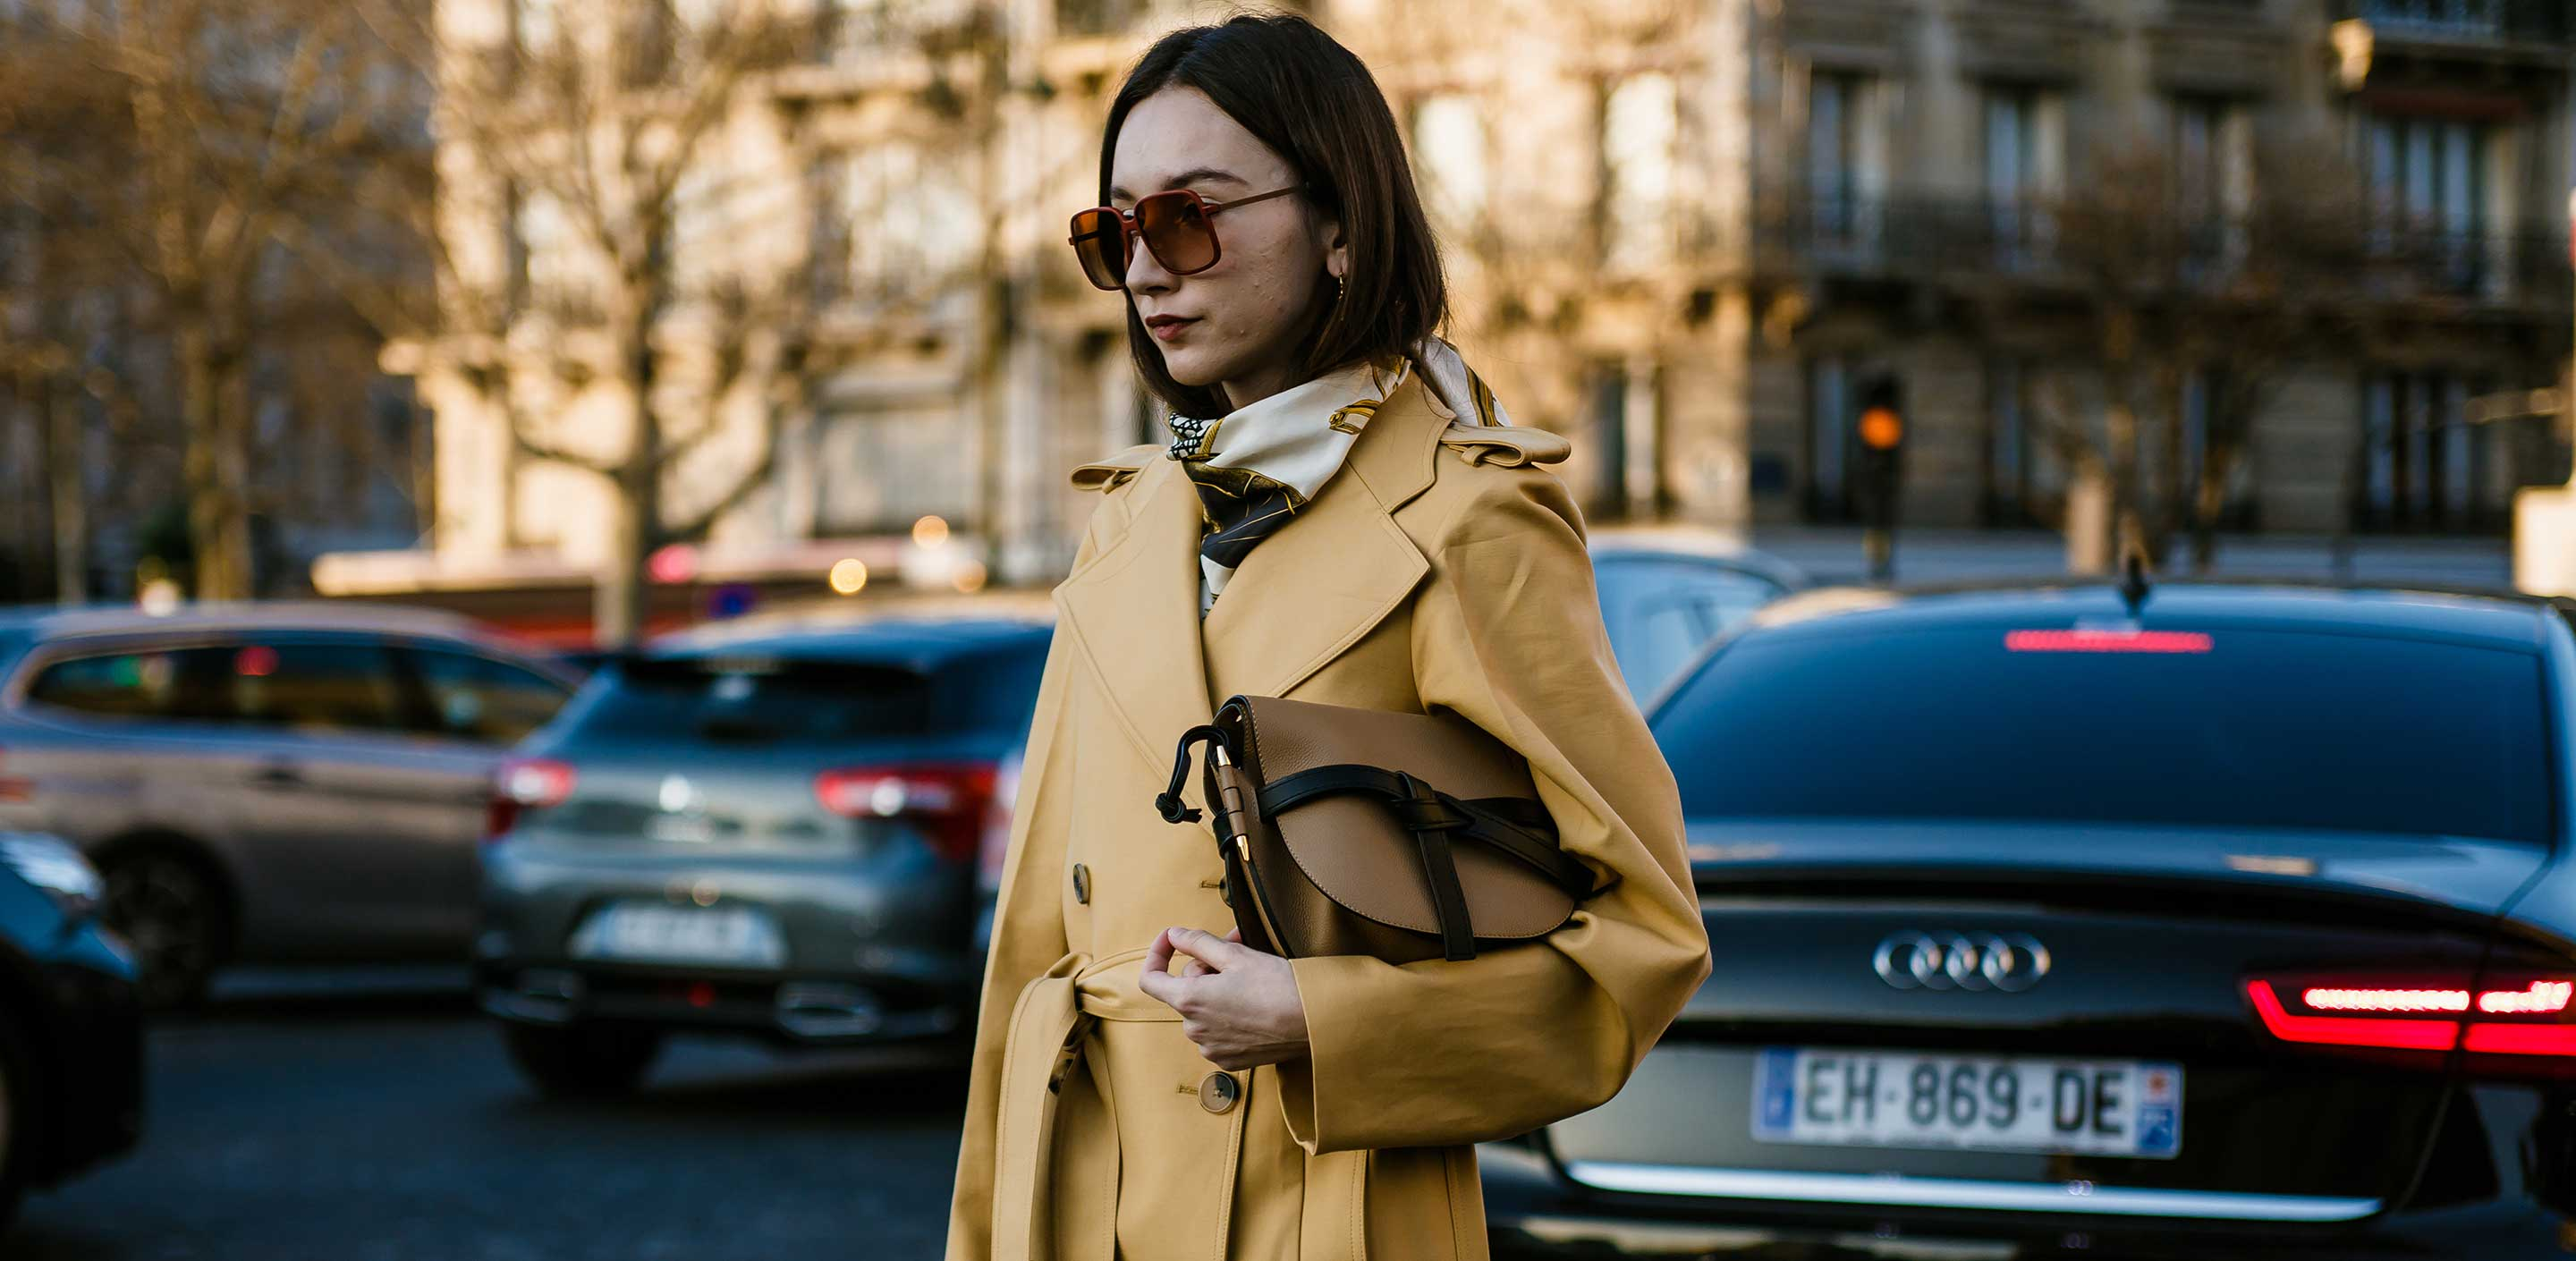 What To Wear With A Trench Coat?